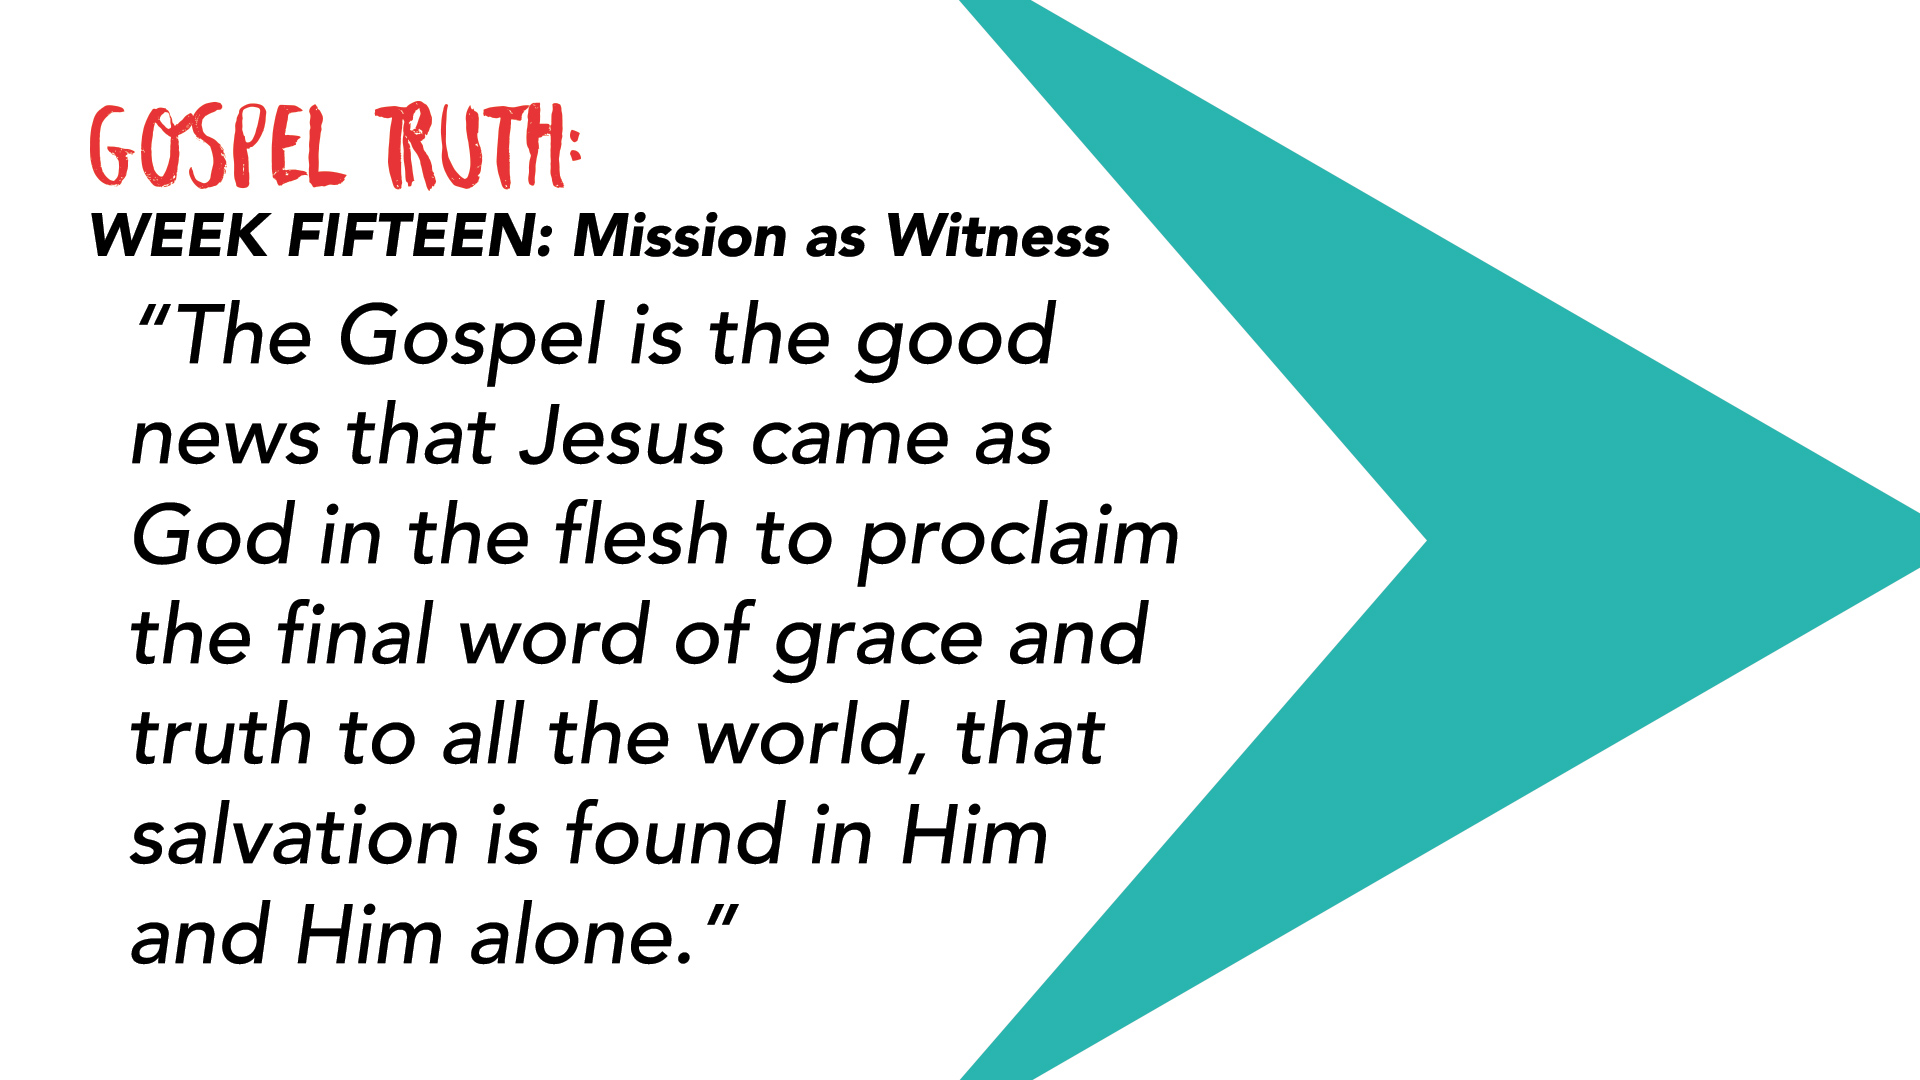 """The Gospel is the good news that Jesus came as God in the flesh to proclaim the final word of grace and truth to all the world, that salvation is found in Him and Him alone."""